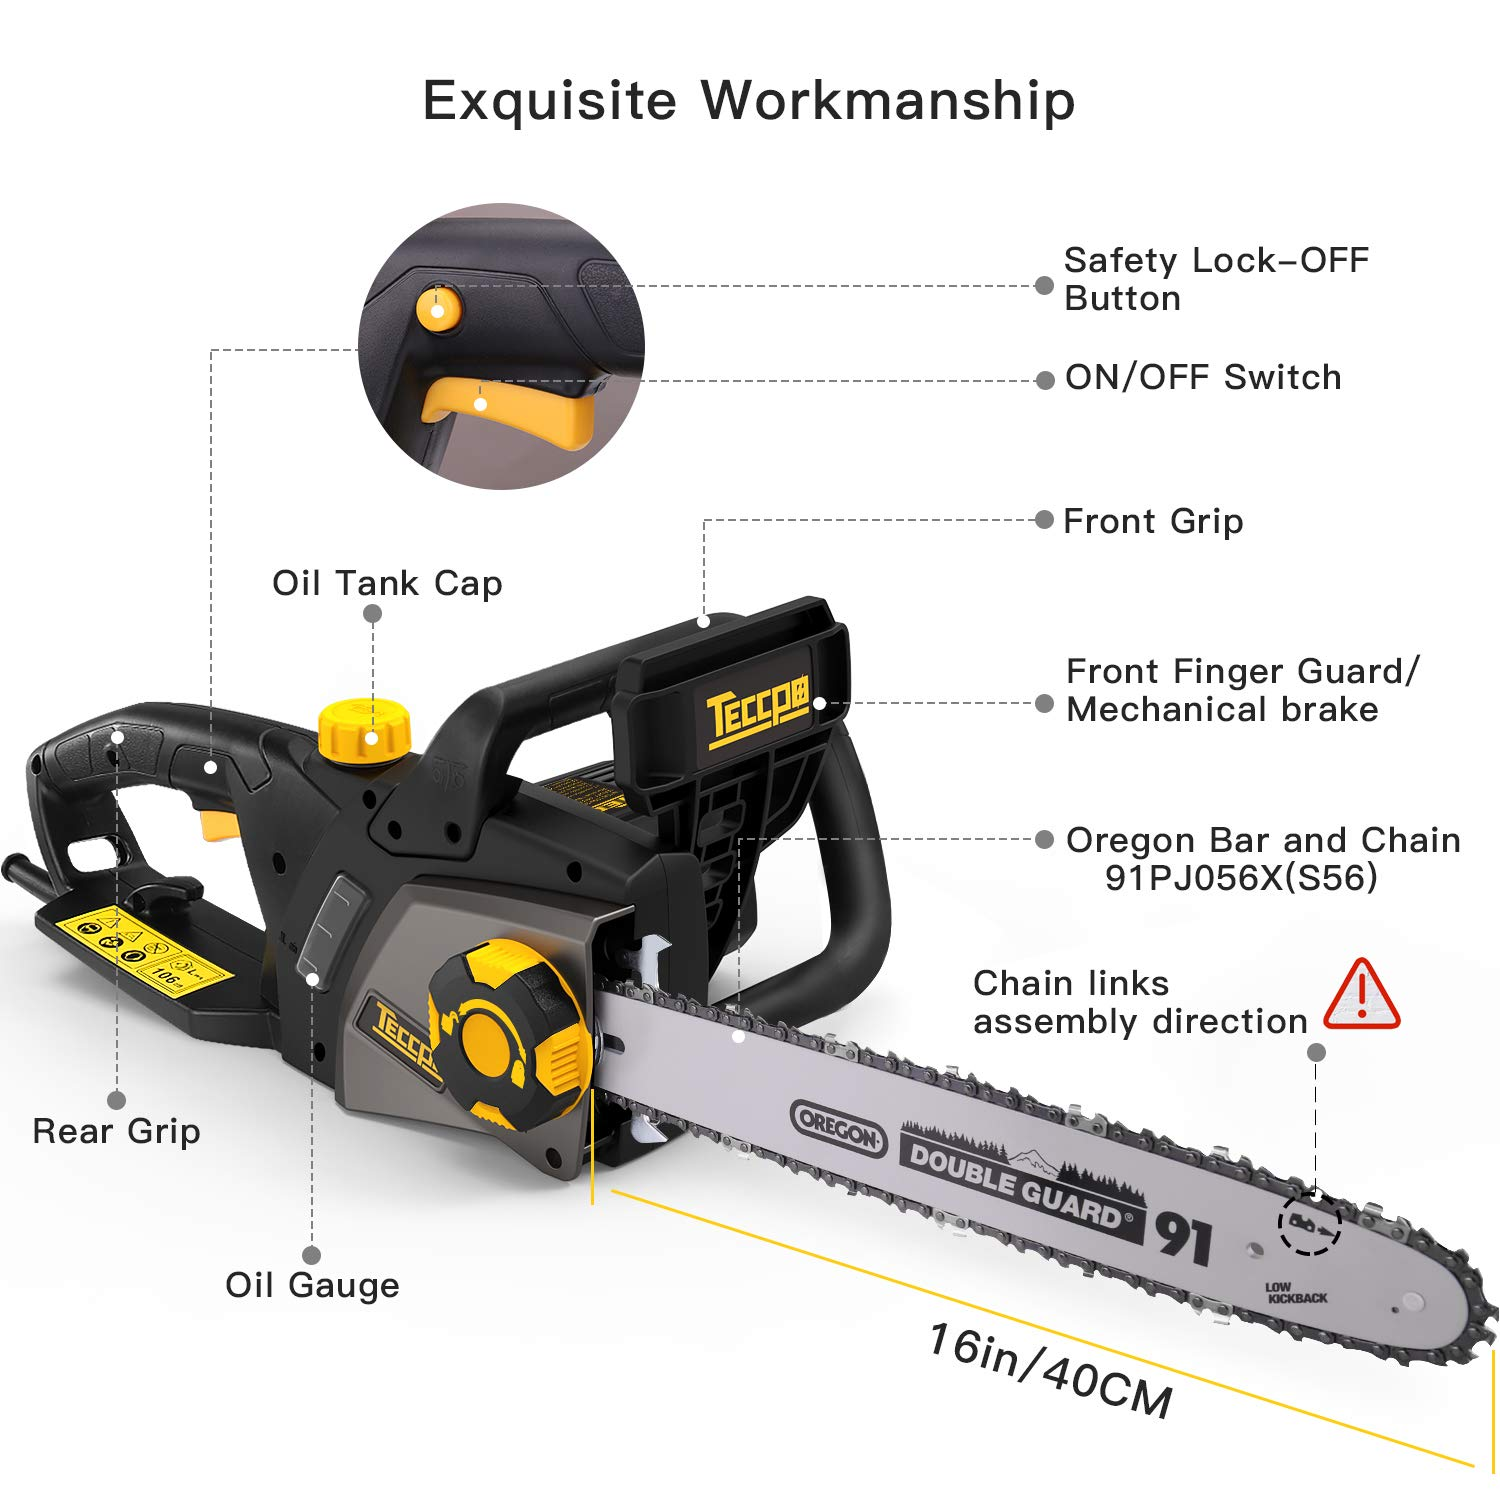 TECCPO Electric Chainsaw, 16-Inch 15 Amp Chain Saw with Automatic Oiler, Tool-Less Chain Tensioning, Mechanical Brake, Low Kickback, 49ft s Chain Speed – TACS01G